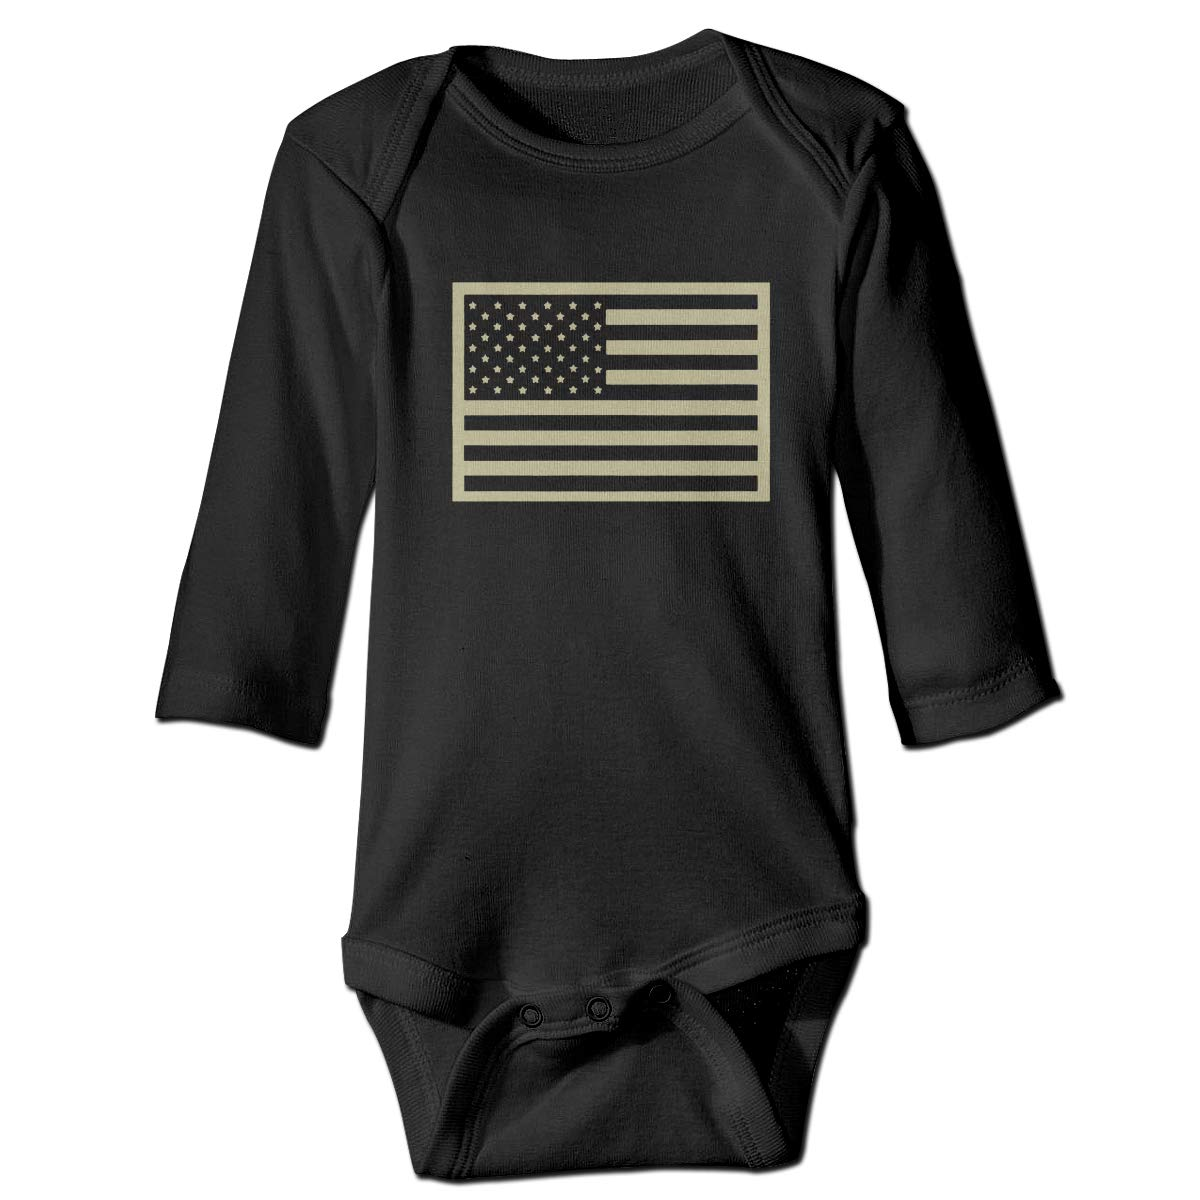 Olyha Subdued Us Flag Tactical Baby Long Sleeve Onesies Soft Romper Bodysuit Outfits